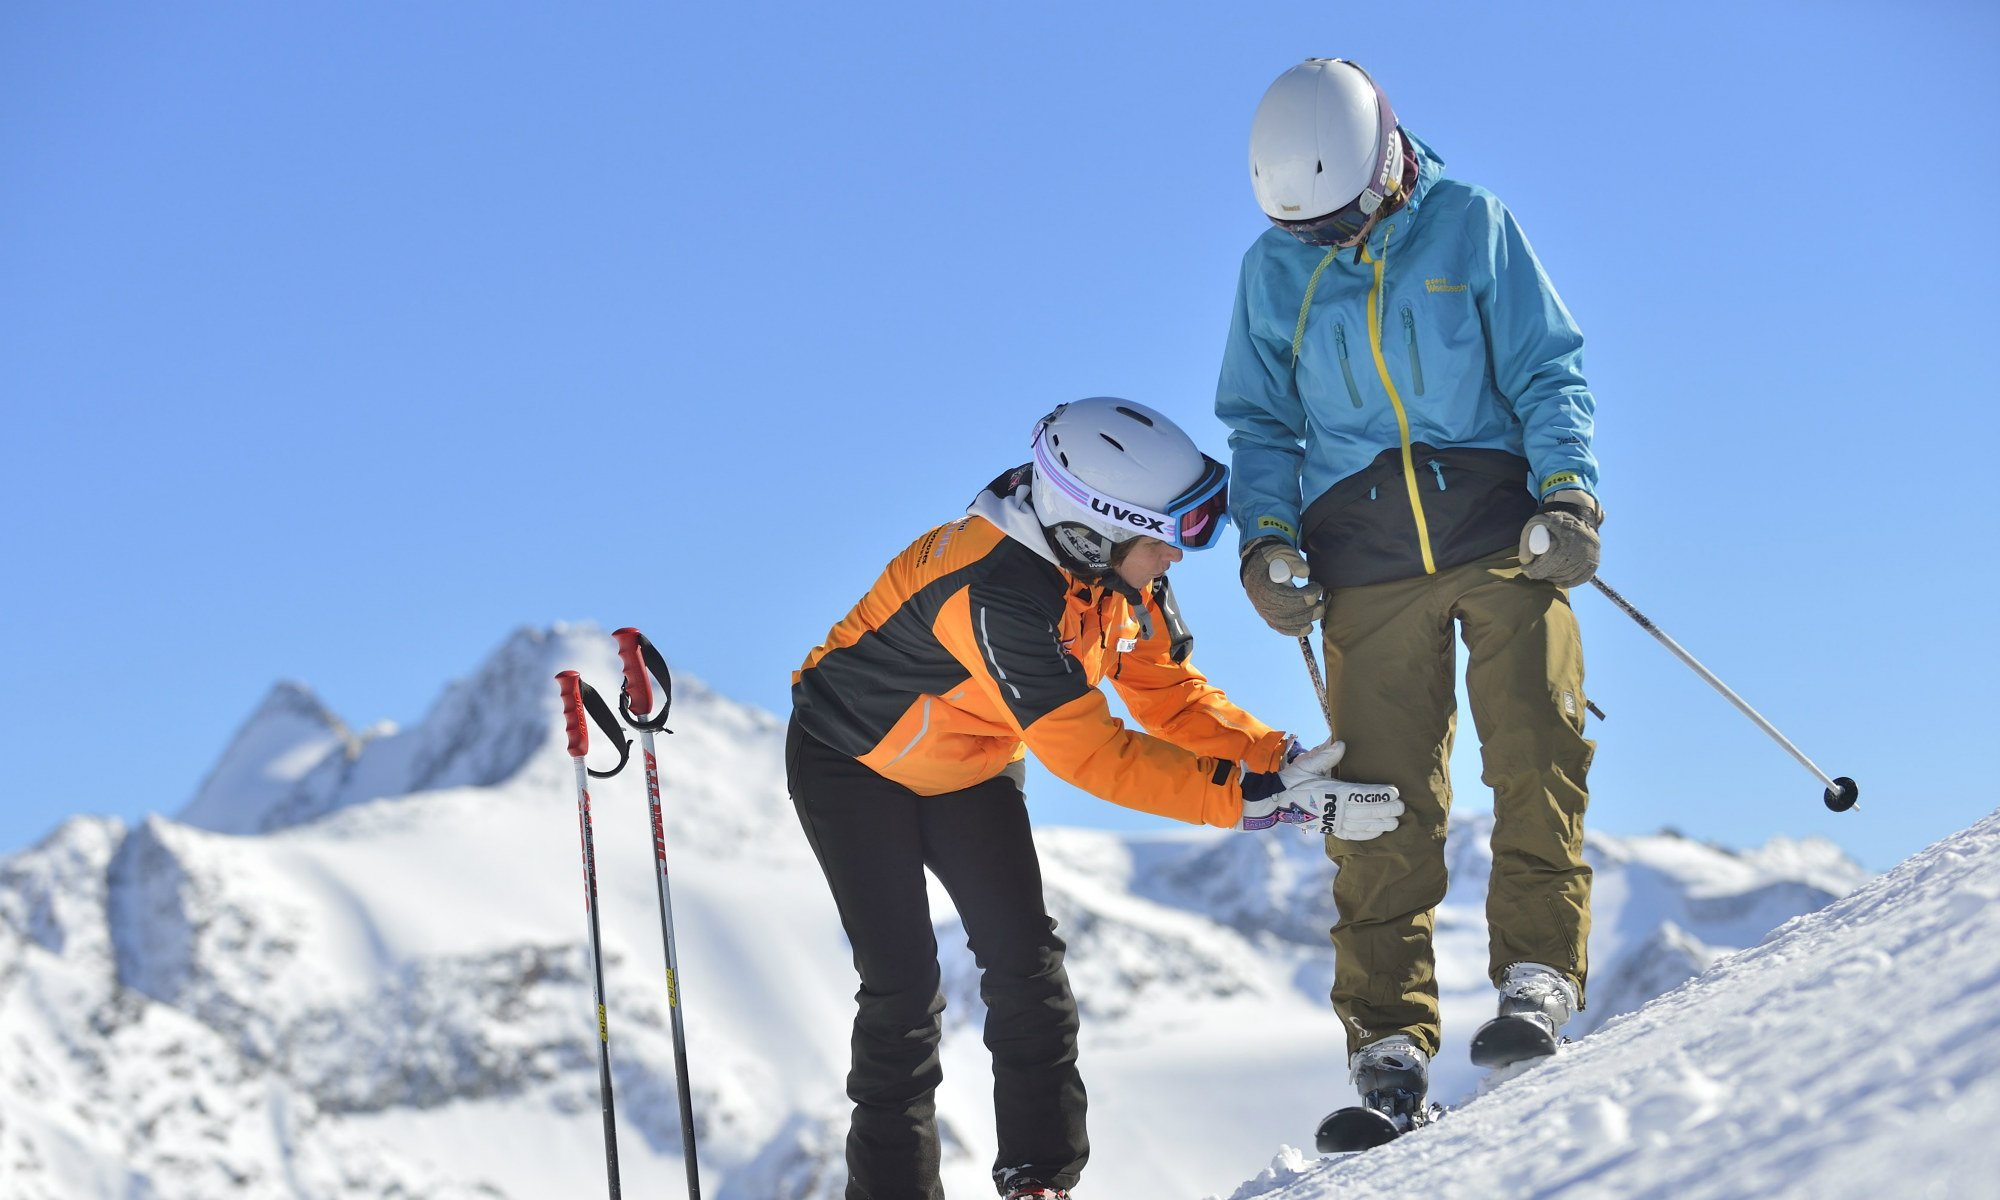 A ski instructor teaches a beginner the right technique.